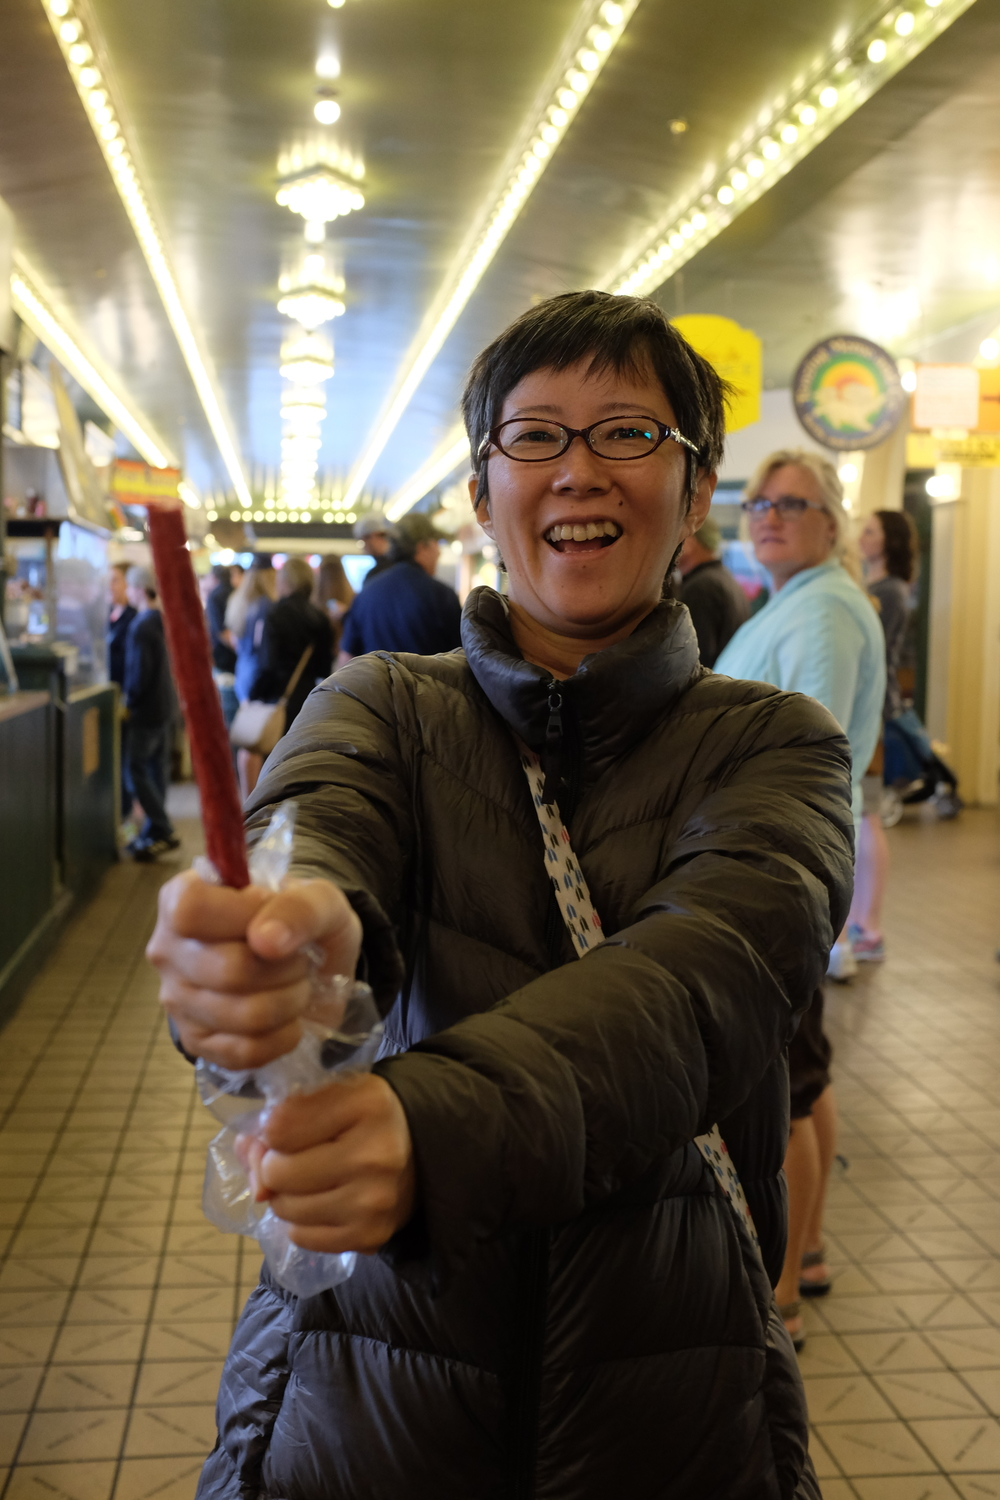 Reiko at Pike Place Market, making believe her beef stick is a shinai. :-(  Photo by Shishido.